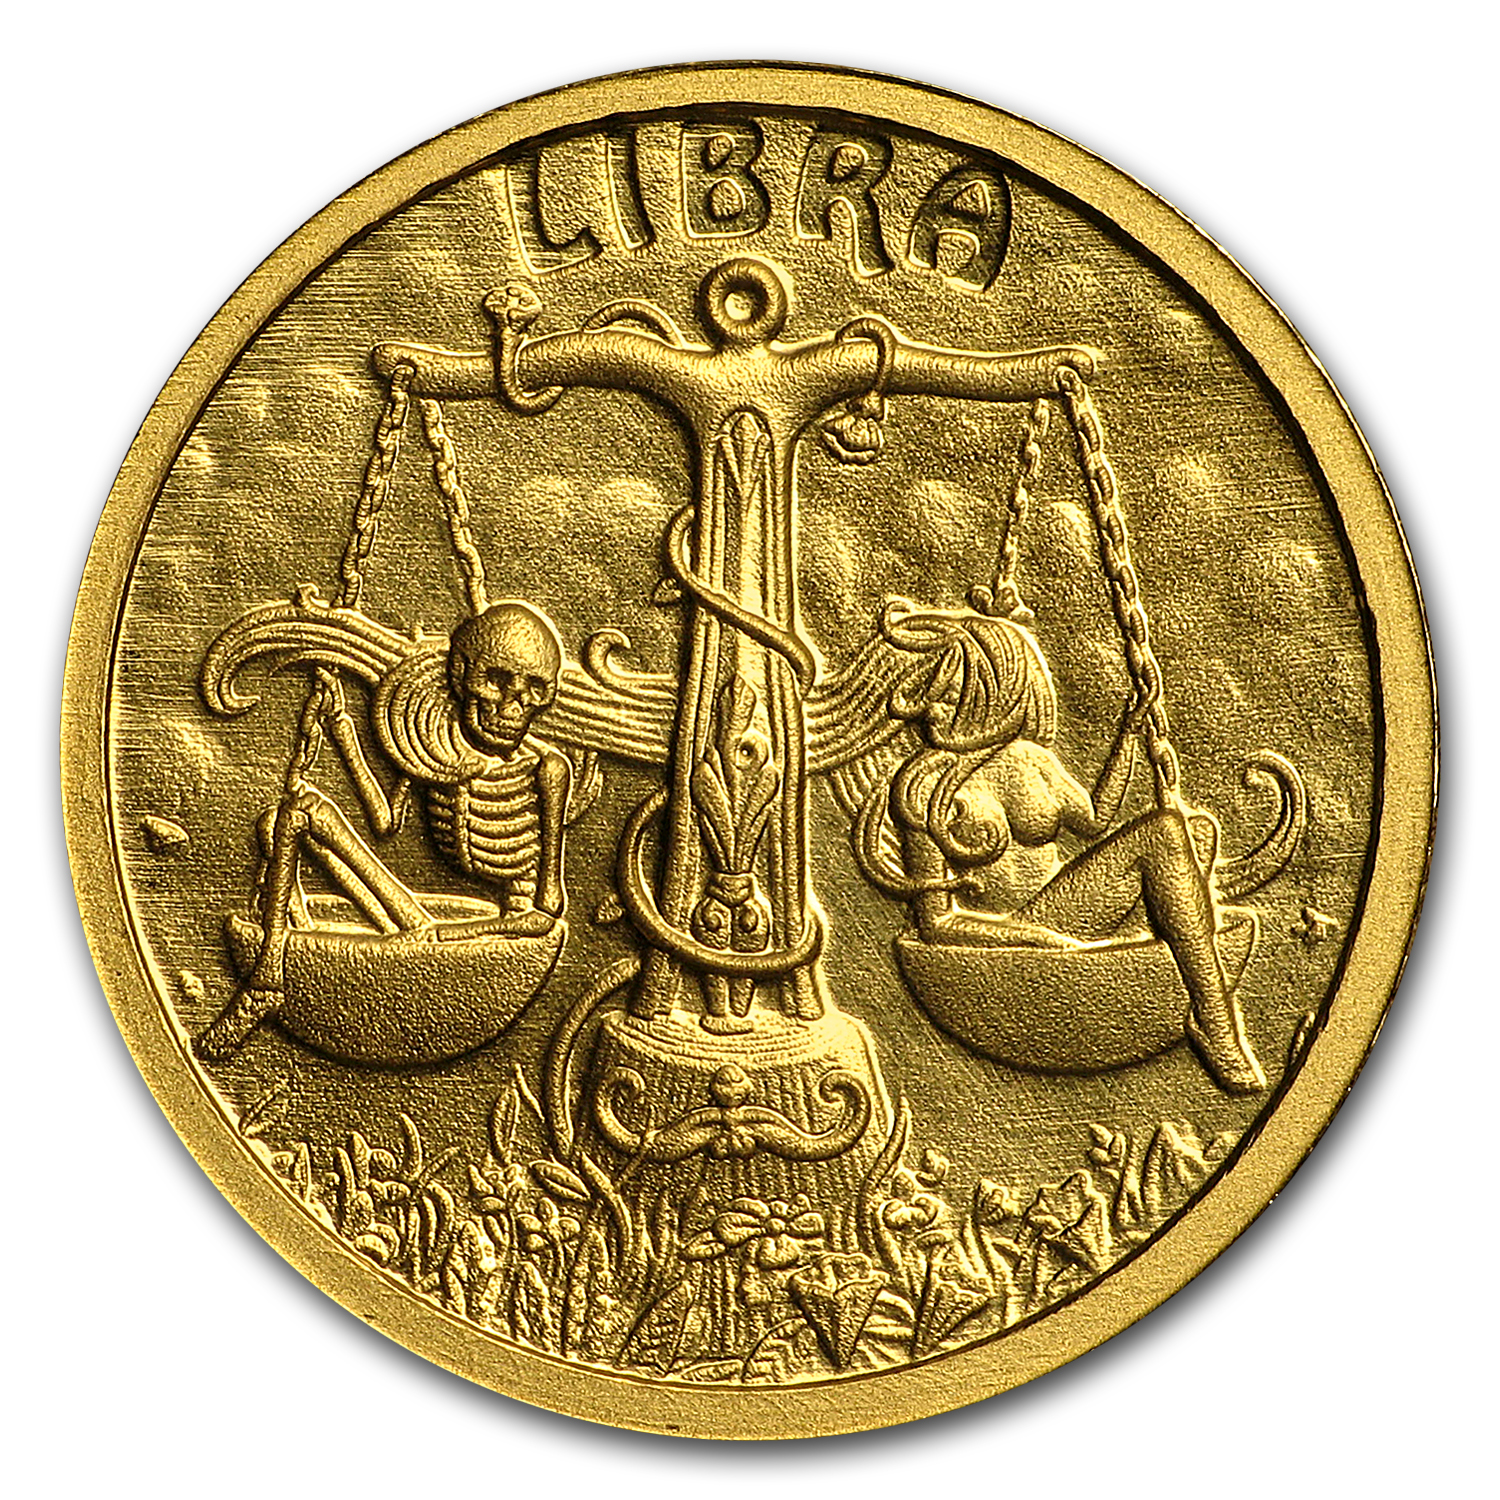 1/10 oz Gold Proof Round - Zodiac Skull Series (Libra)